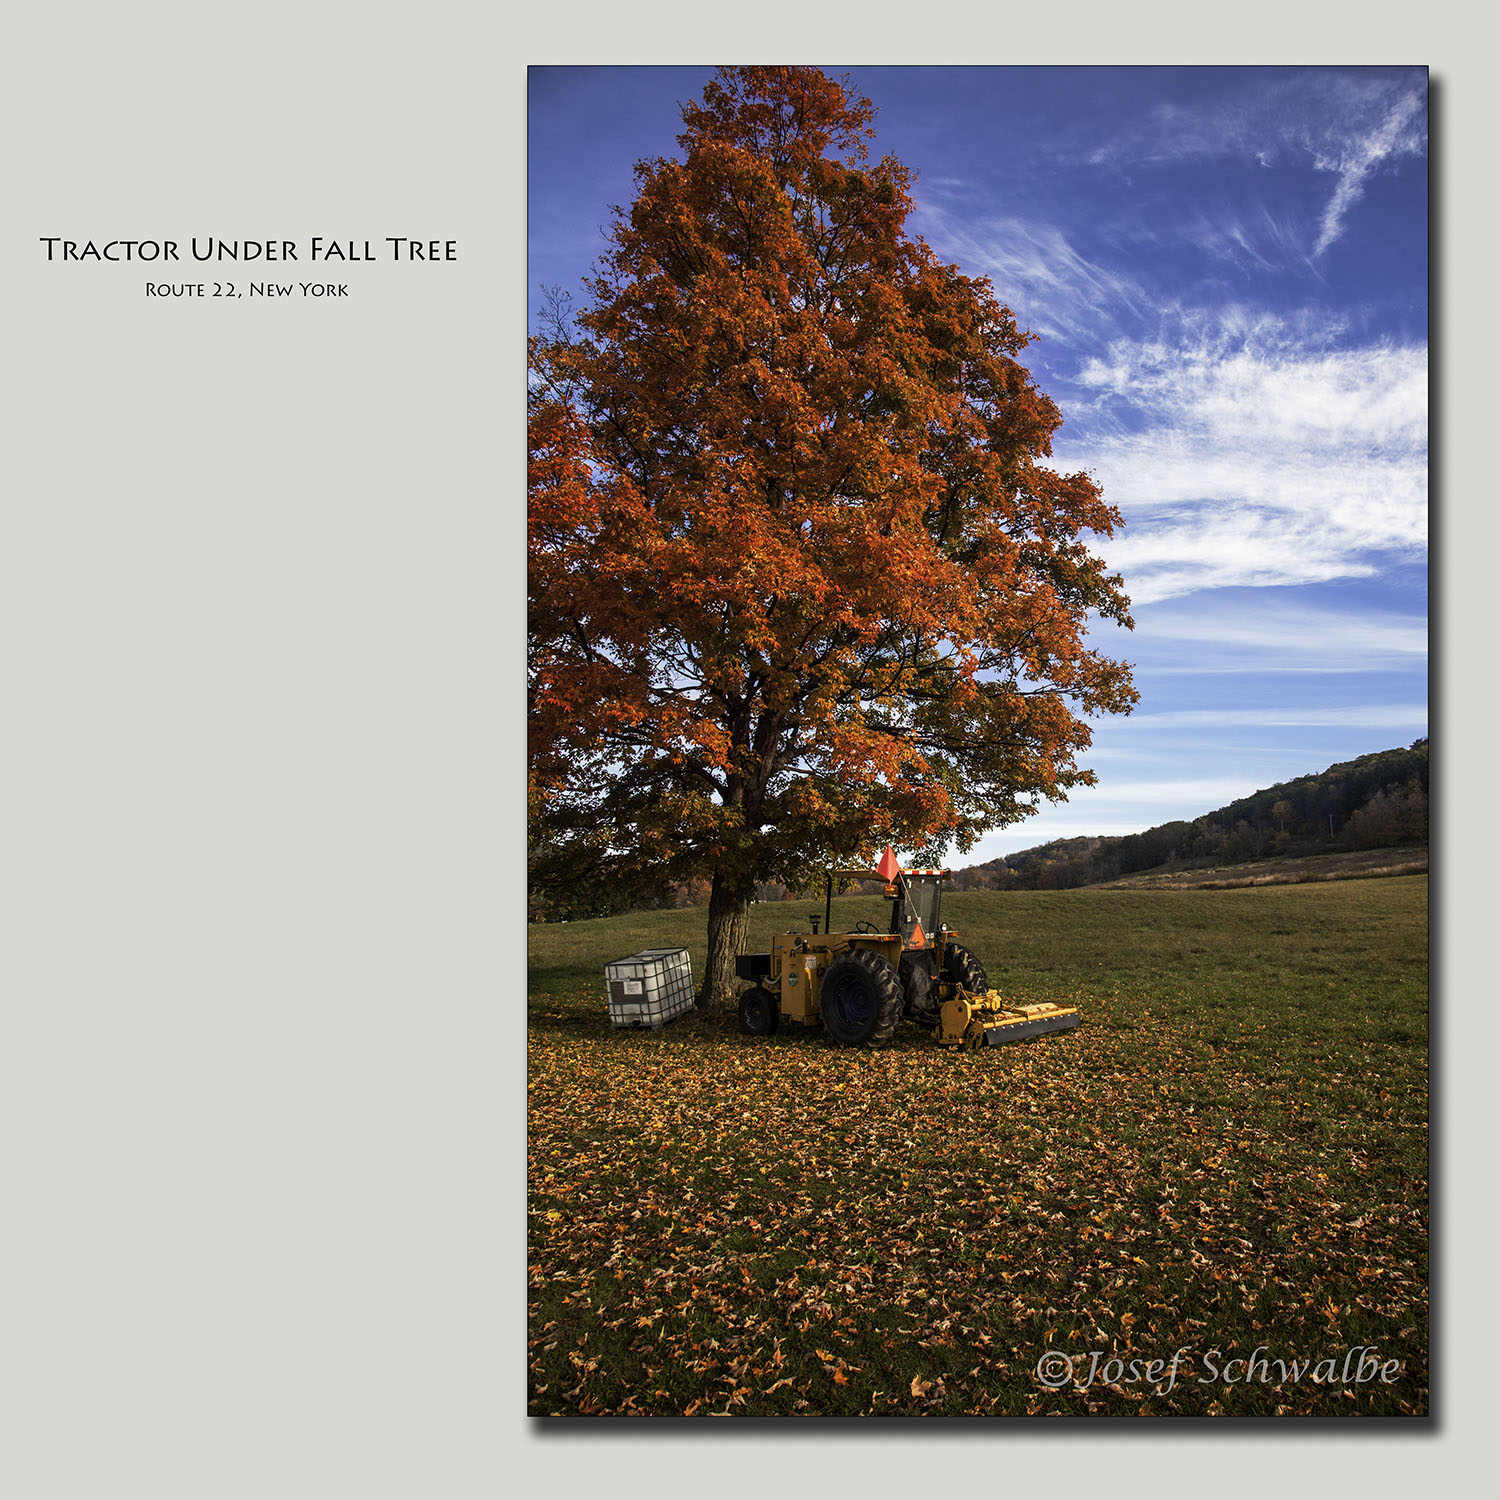 Tractor Under Fall Tree